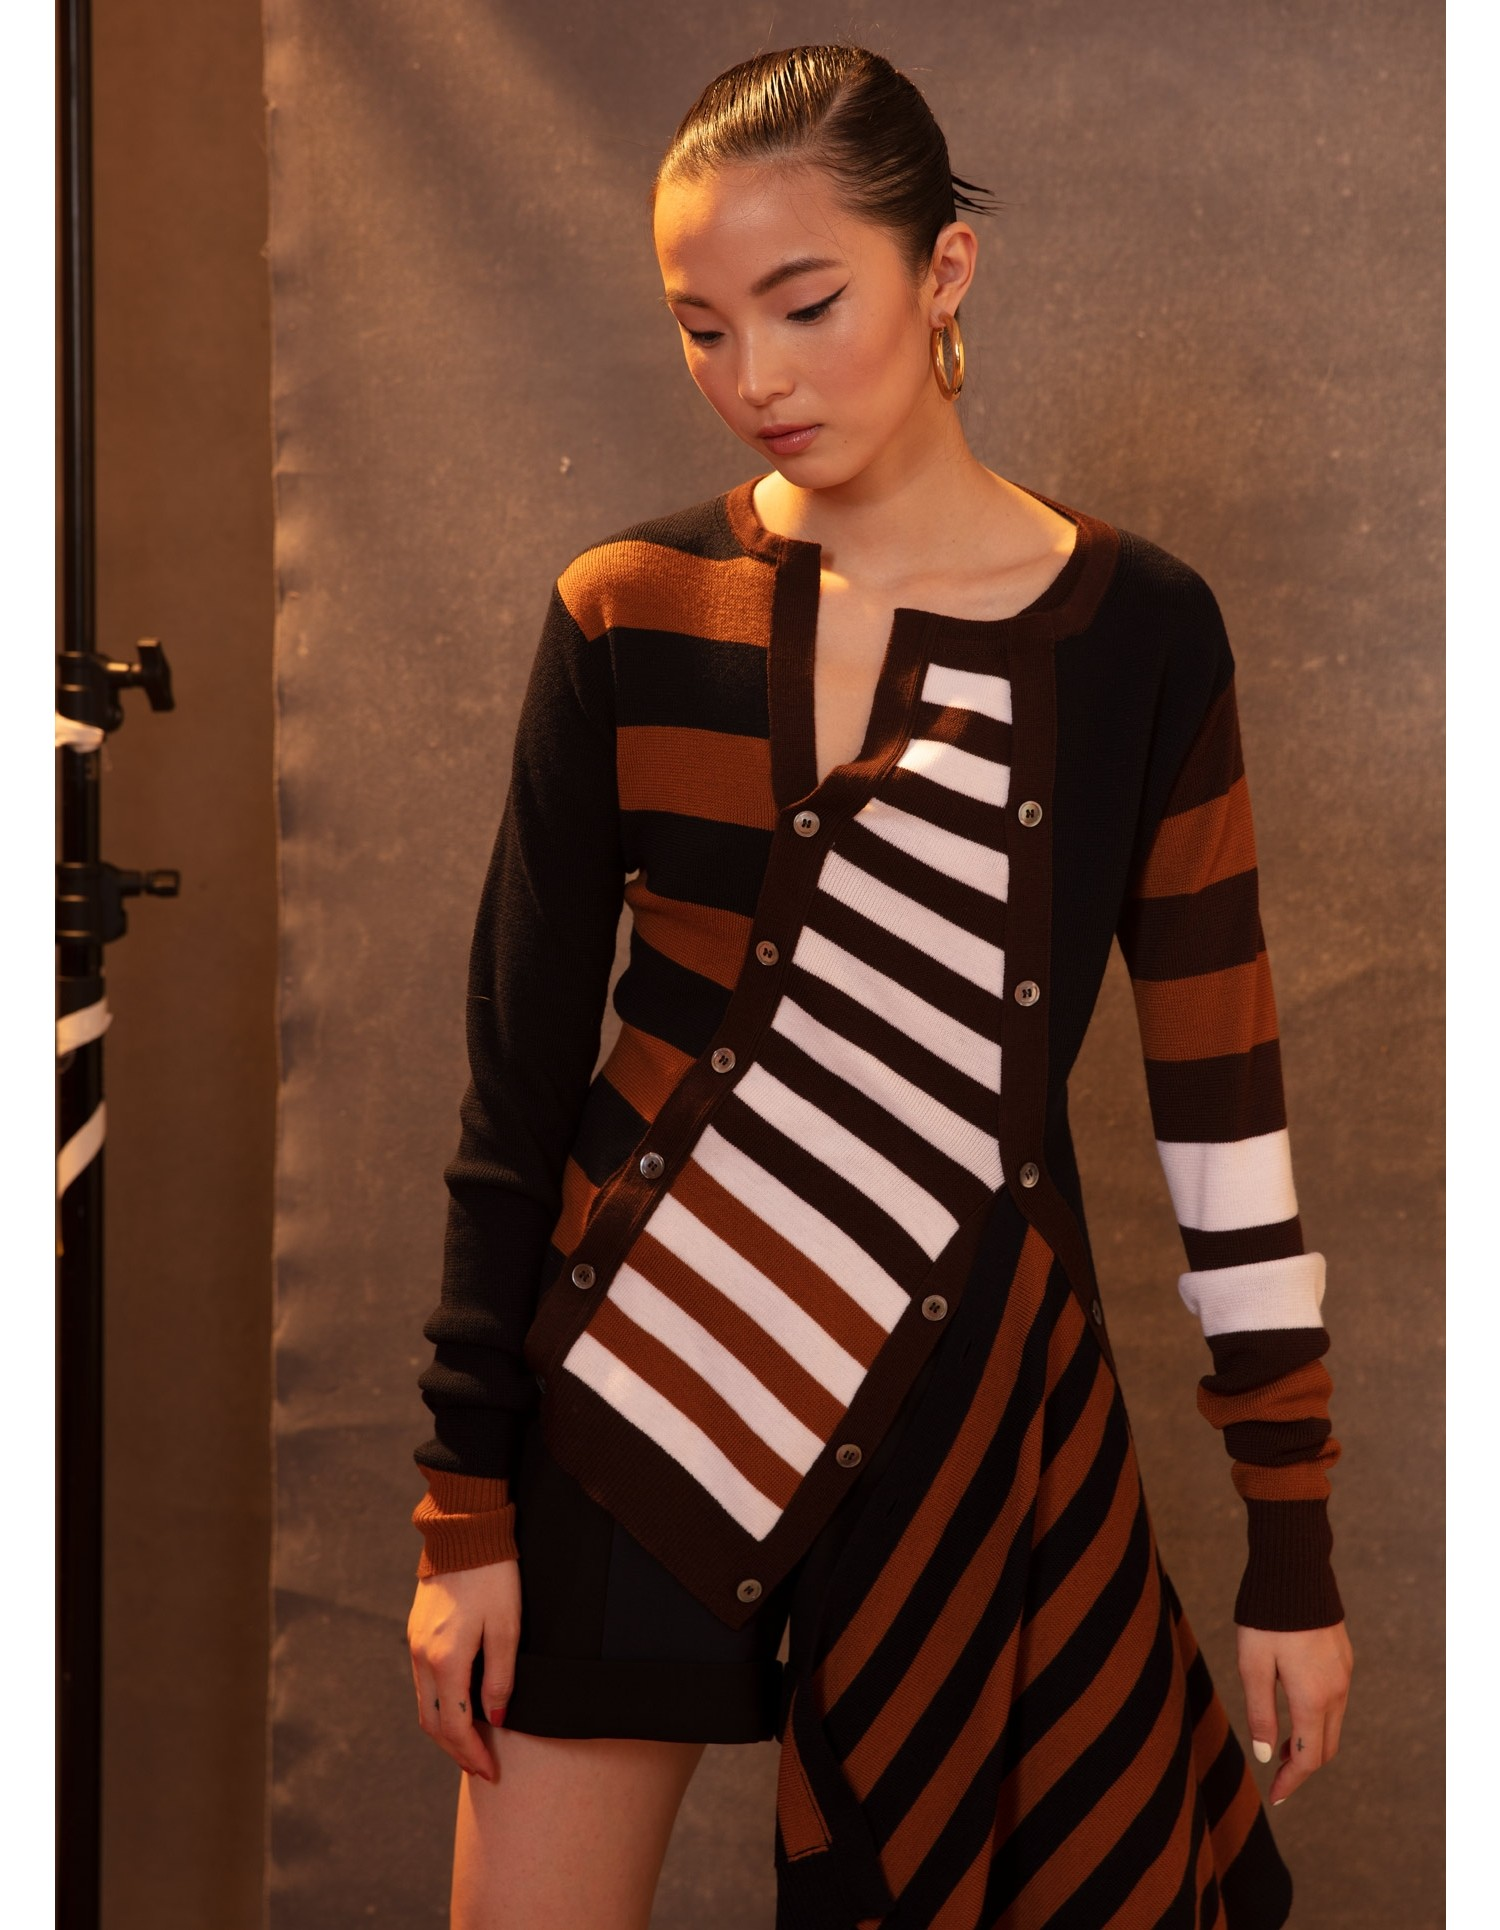 MONSE Multilayer Striped Cardigan in Midnight Multi on Model Front View